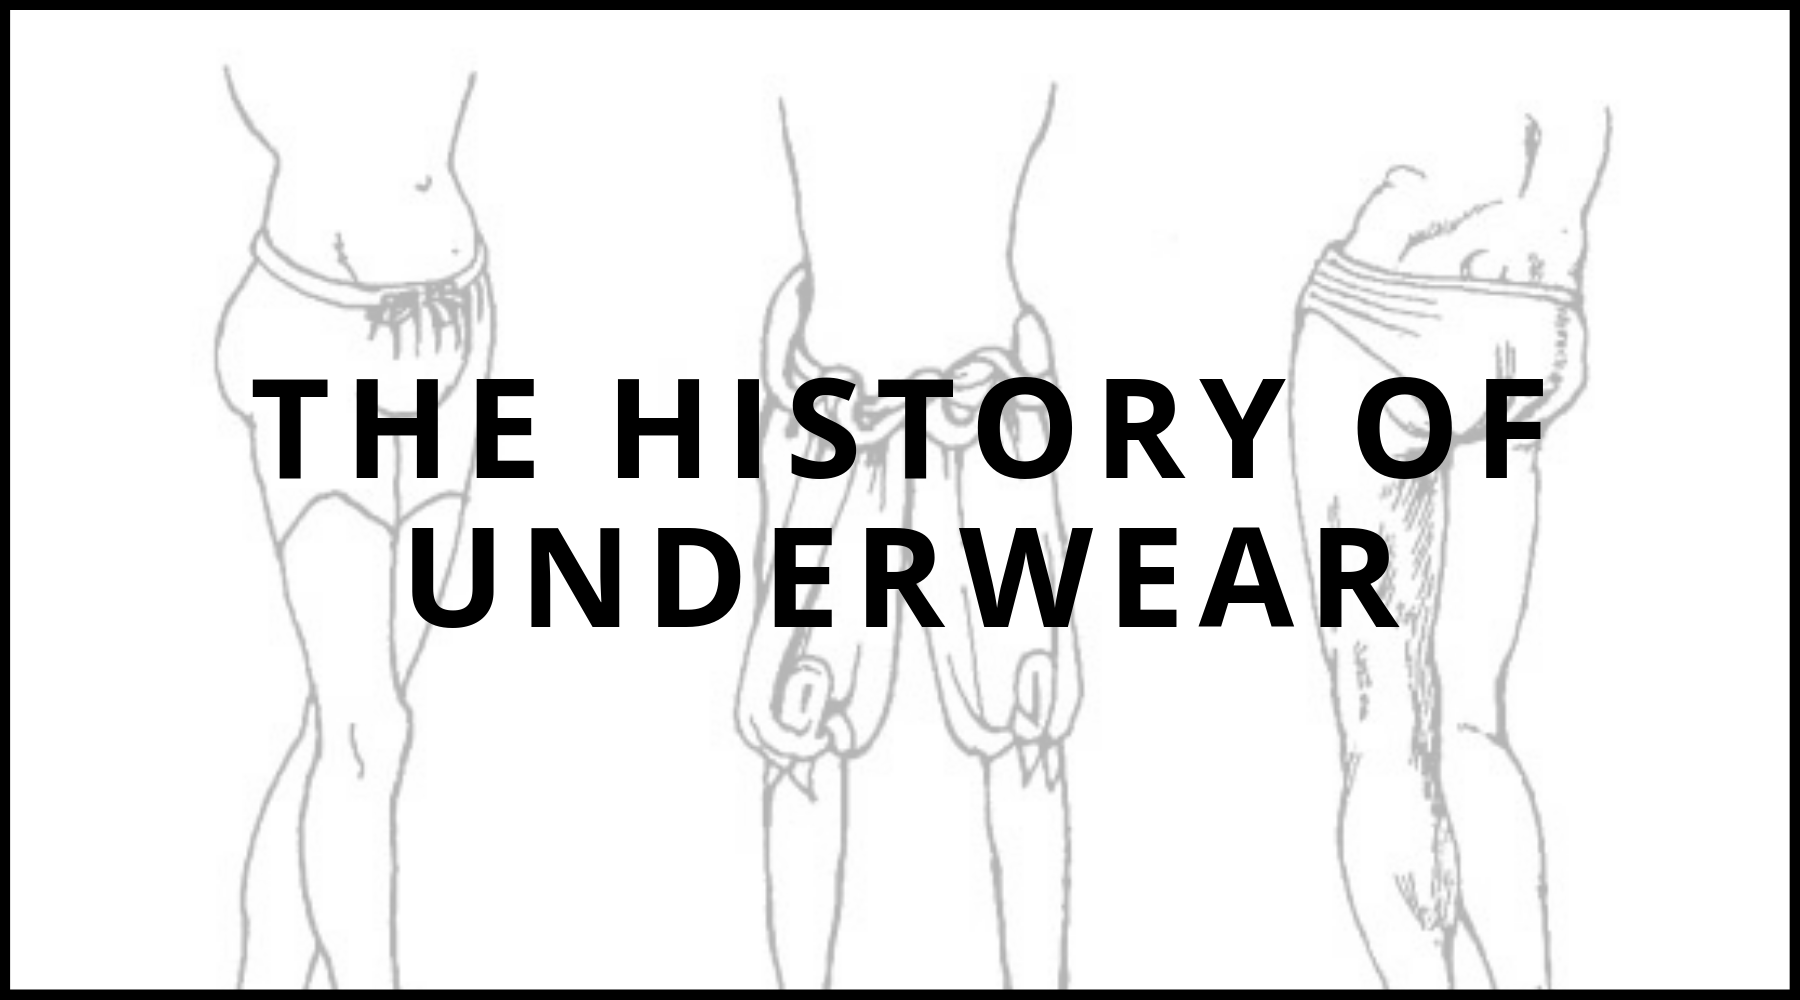 The History of Underwear